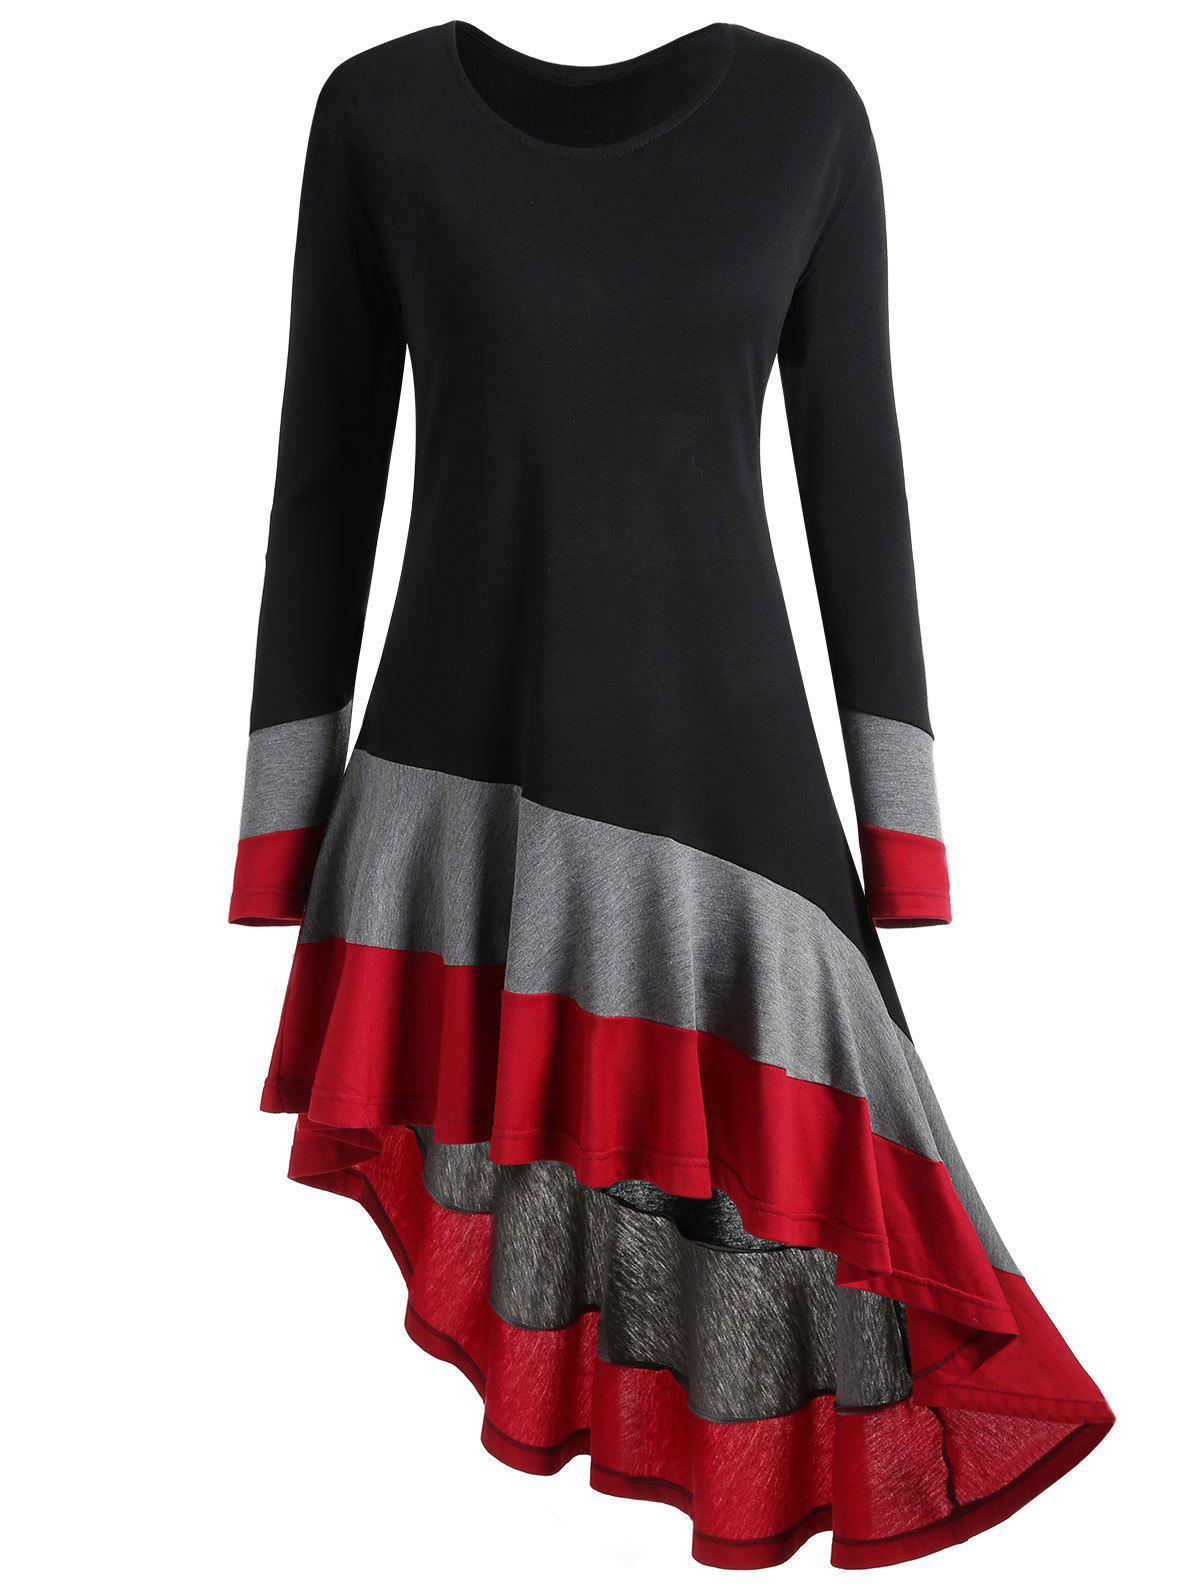 Plus Size Color Block Asymmetric Top, Black and grey